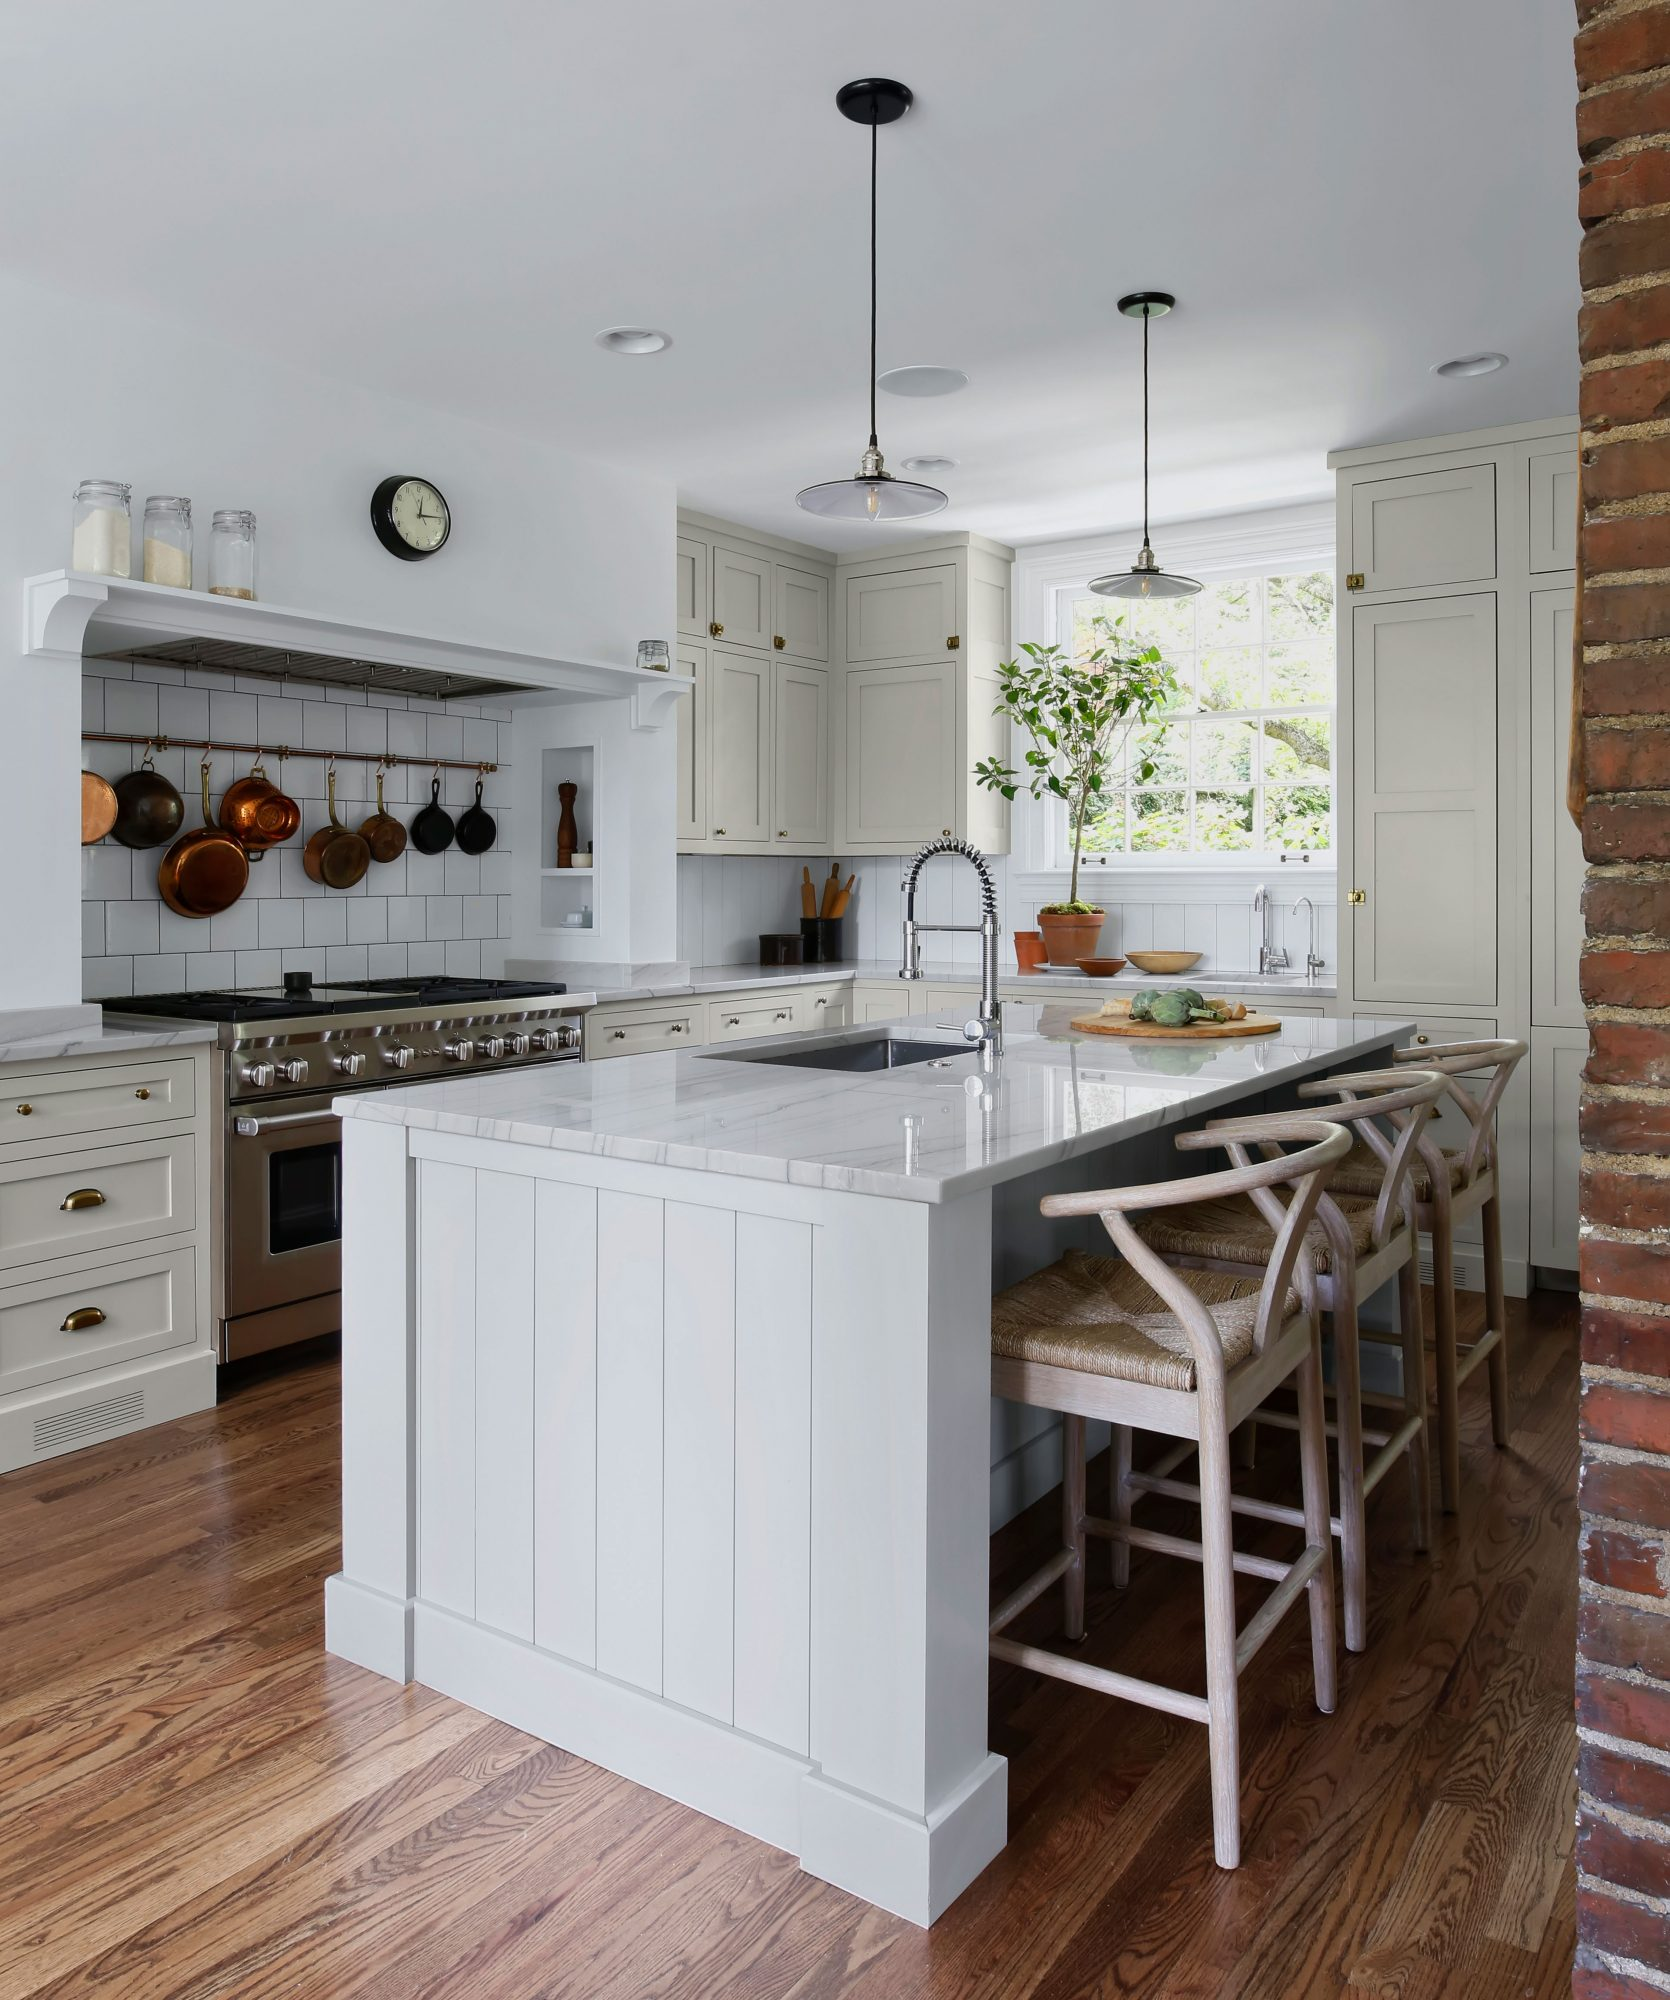 Cottage Style Kitchen with Brick Wall, Island, and Wood Floors